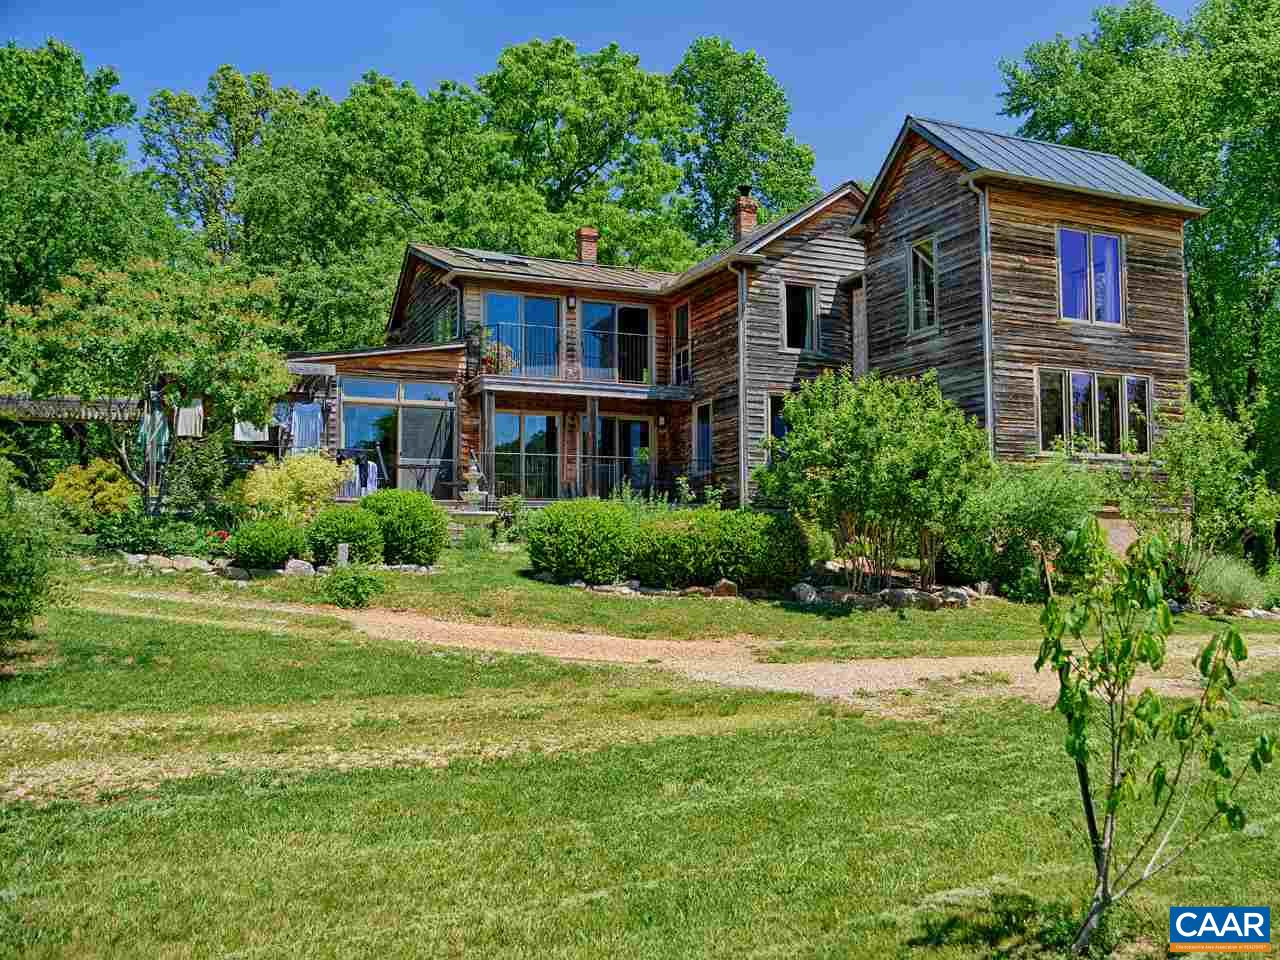 Single Family Home for Sale at 8547 BATESVILLE Road Afton, Virginia 22920 United States